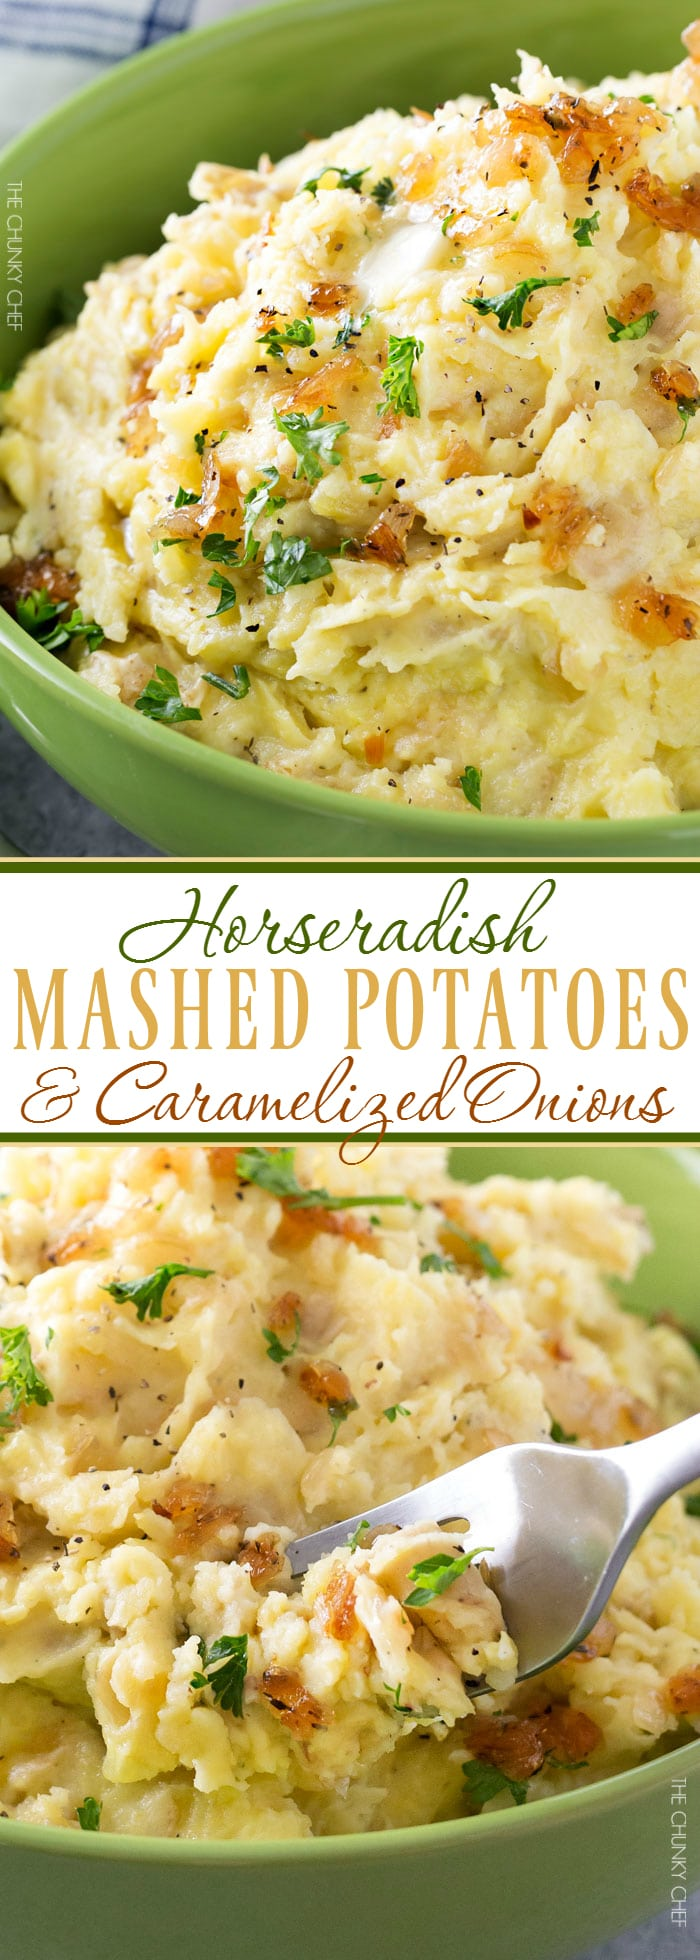 Horseradish Mashed Potatoes with Caramelized Onions | Not your average side dish, these mashed potatoes are full of amazing flavor combinations. Perfect for your holiday table! | http://thechunkychef.com